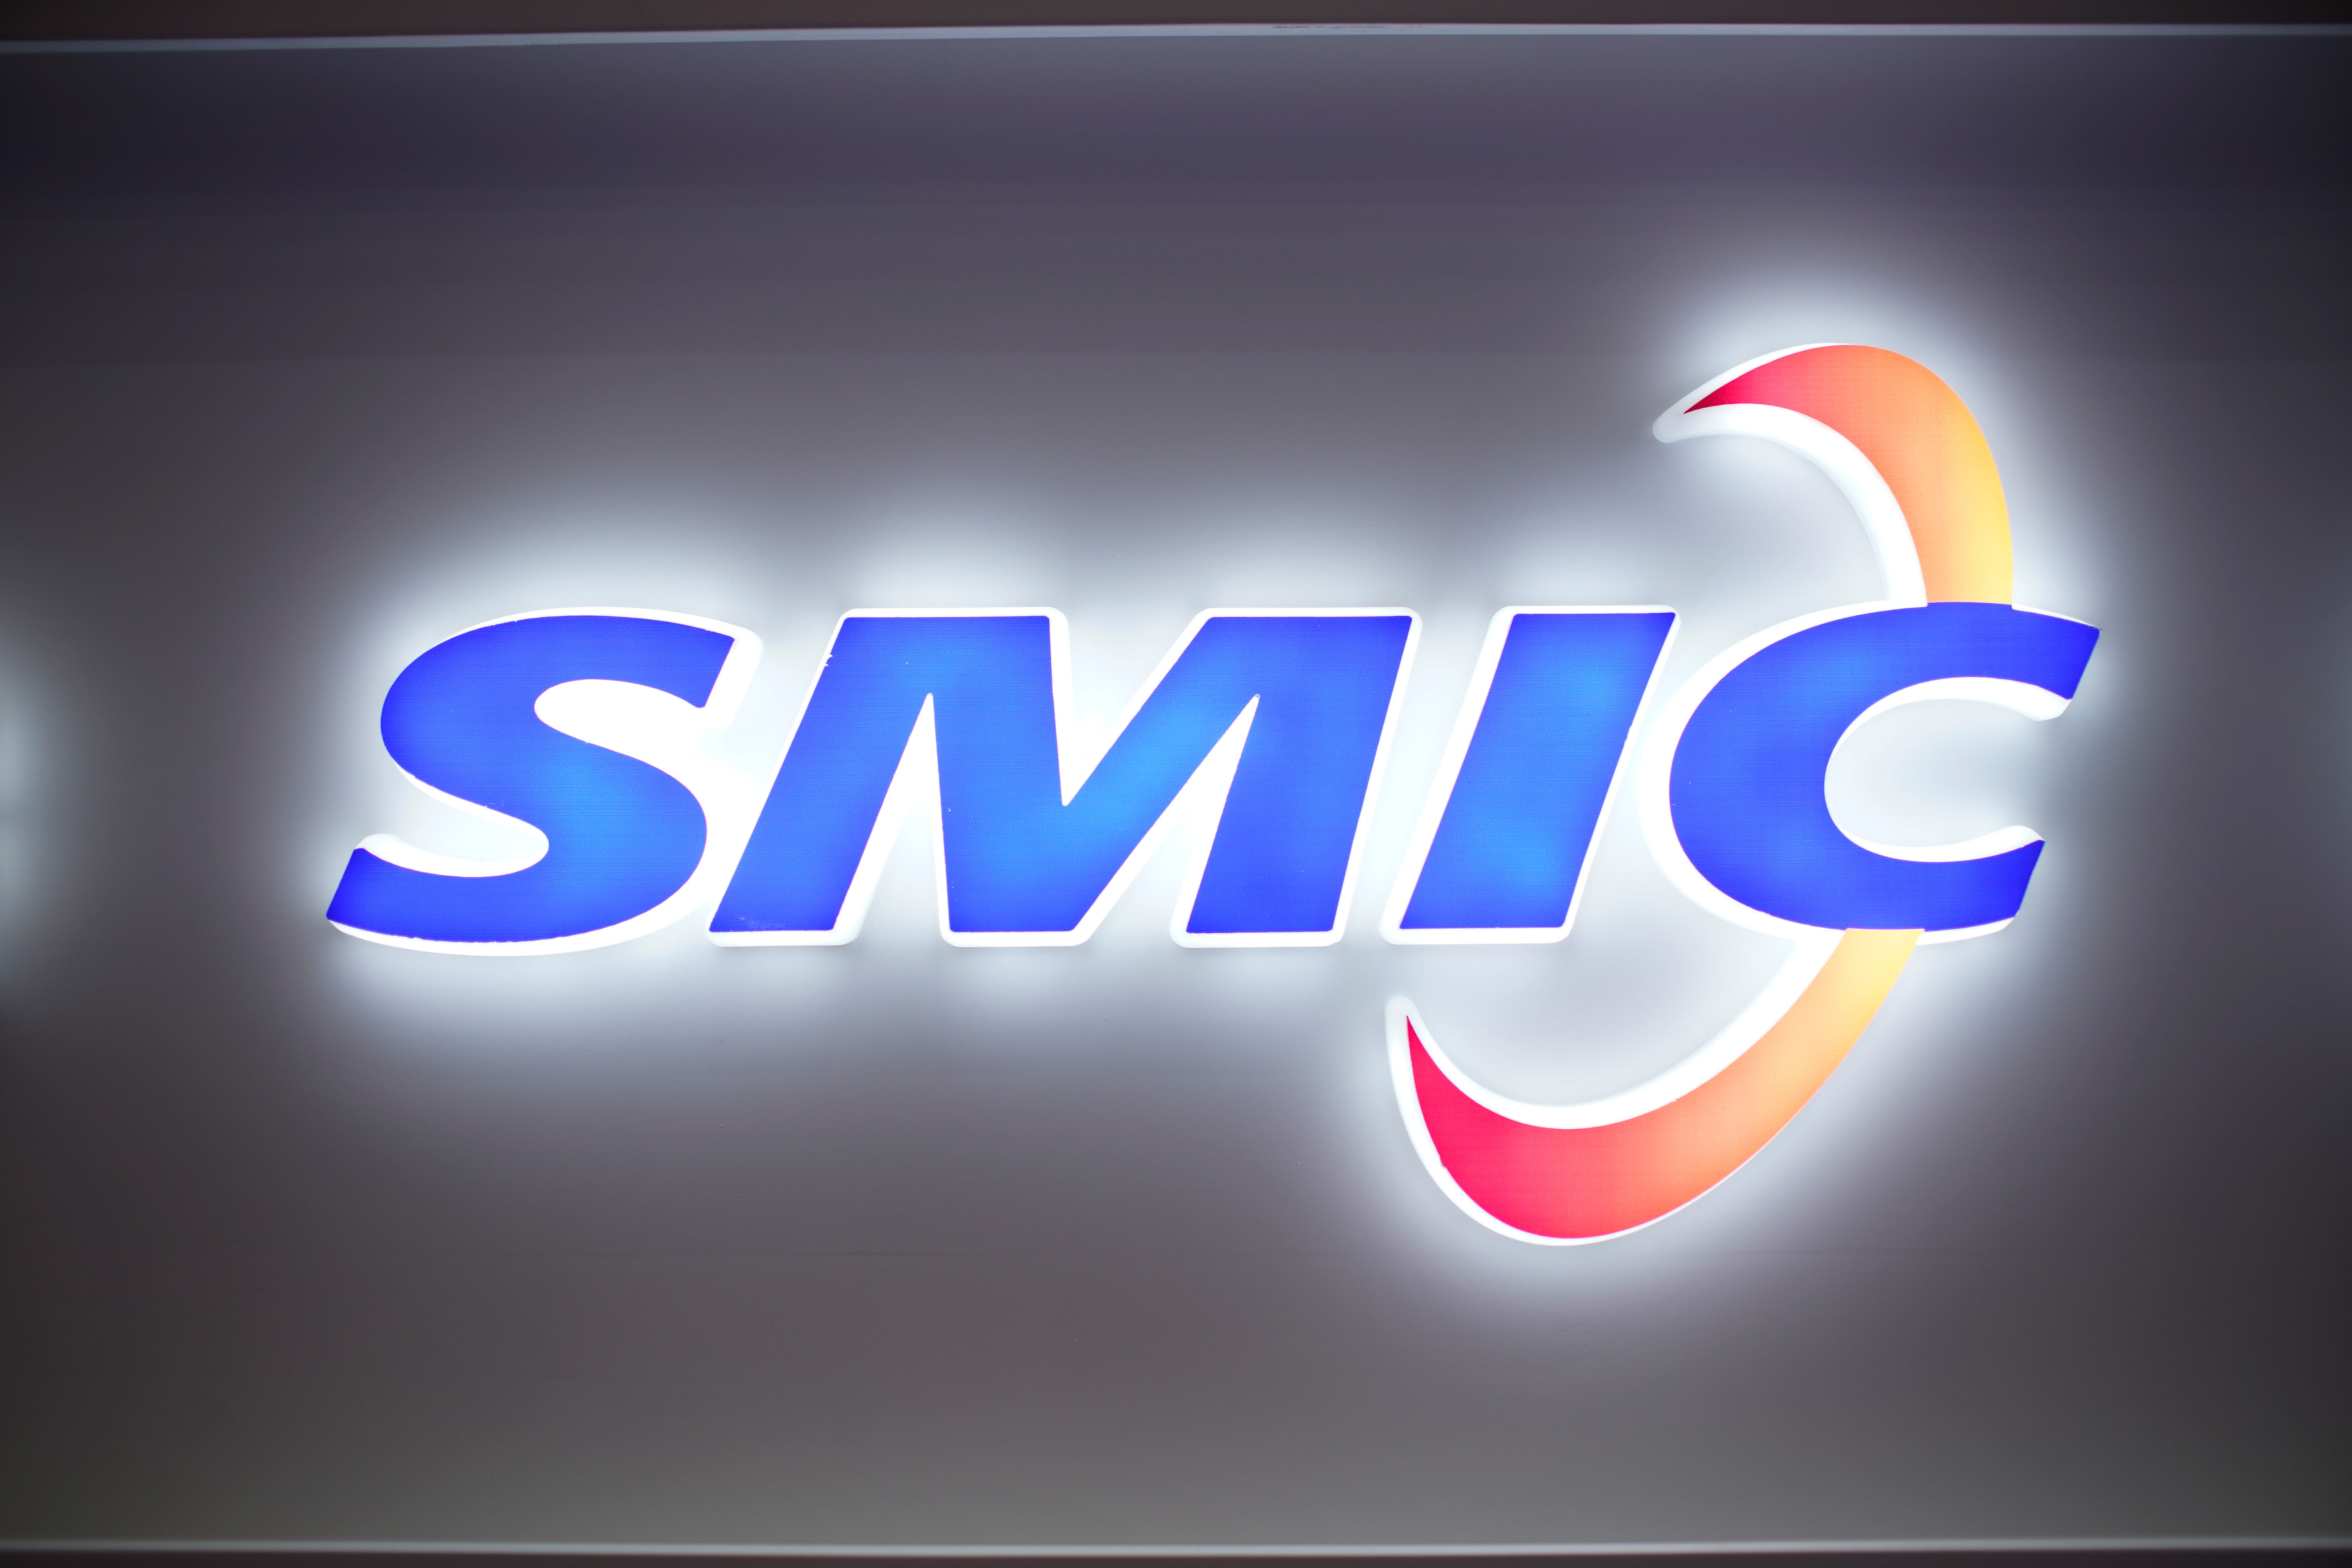 A logo of Semiconductor Manufacturing International Corporation (SMIC) is seen at China International Semiconductor Expo (IC China 2020) following the coronavirus disease (COVID-19) outbreak in Shanghai, China October 14, 2020. REUTERS/Aly Song